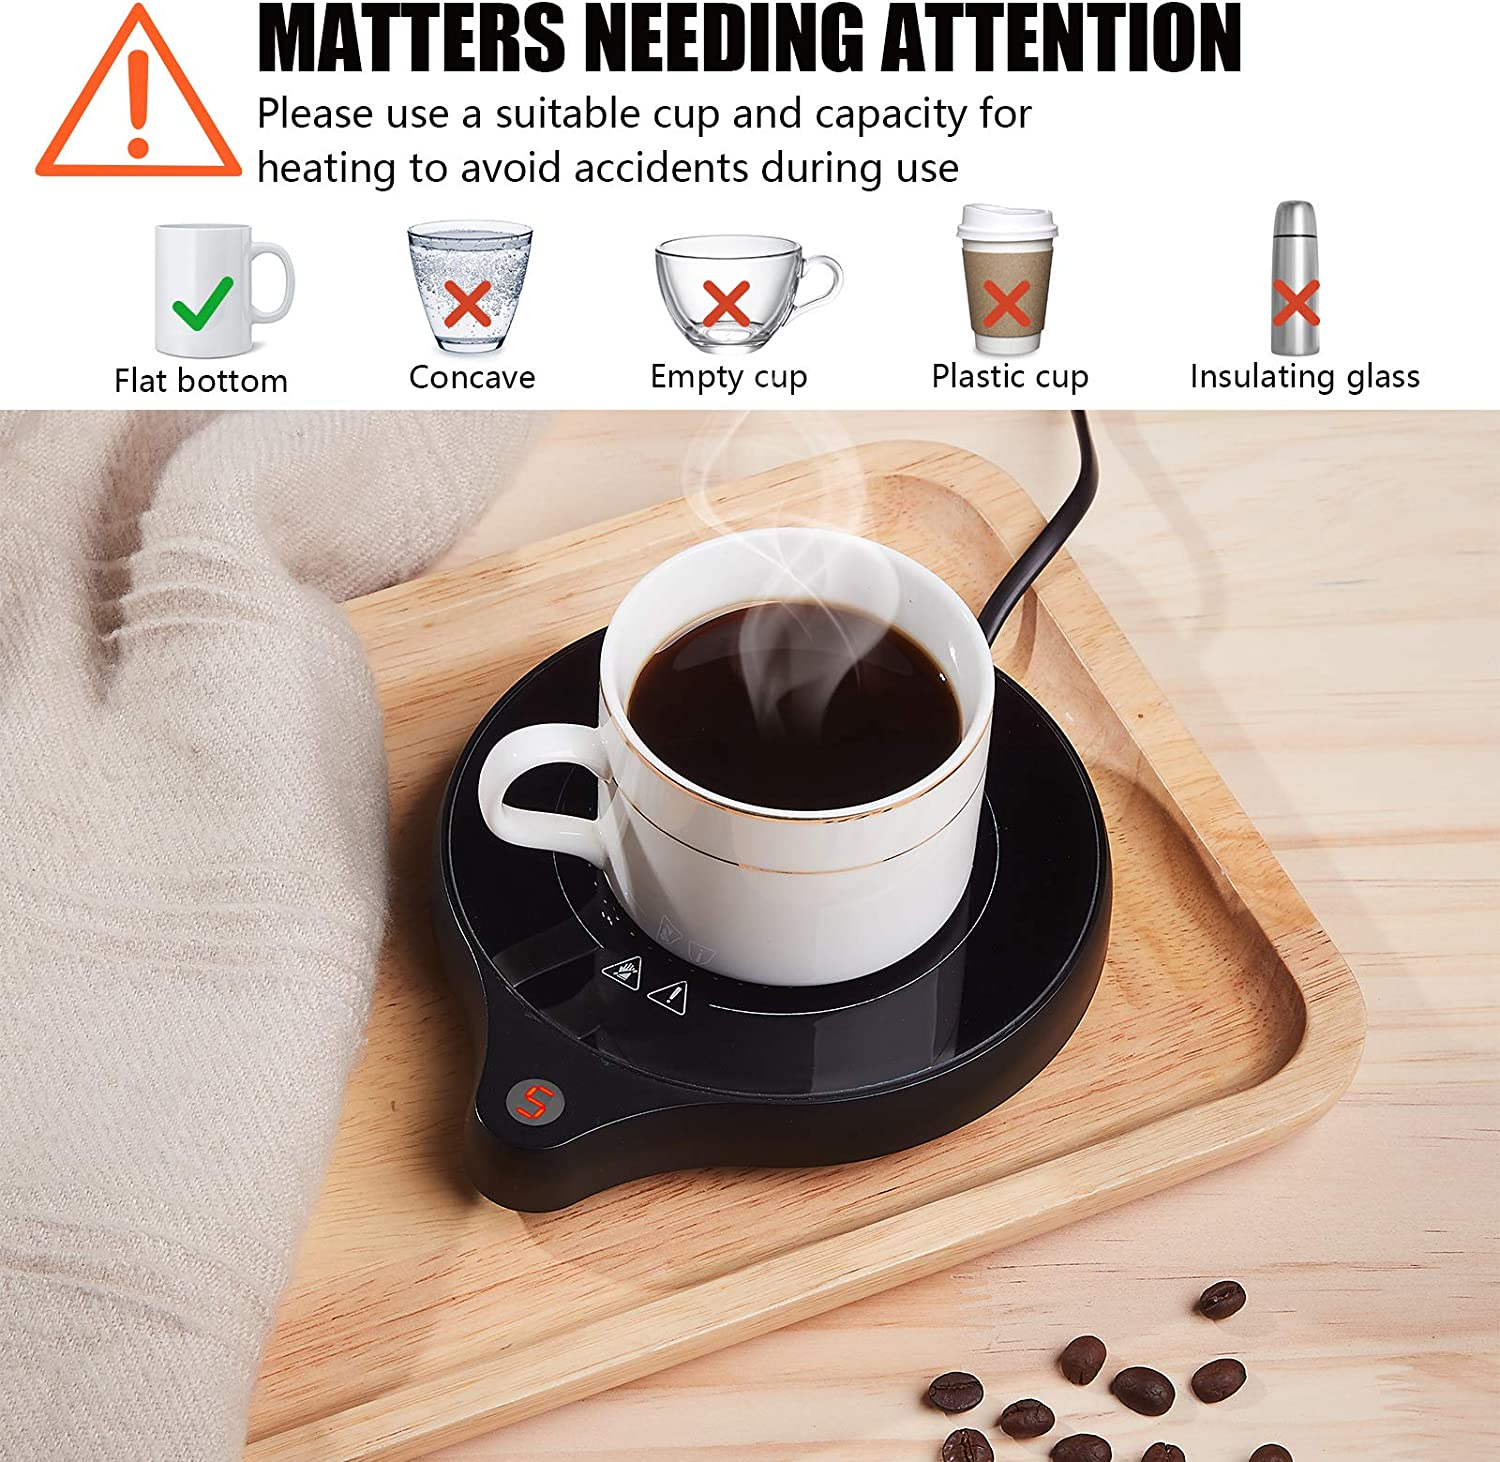 Candle Wax Cup Warmer Heating Plate 2020 New Coffee Mug Warmer and Office Warmer Electric Beverage Warmer with 5 Temperature Settings Up To 176/°F//80/° Auto On//Off Gravity-induction Mug Warmer for Office Desk Use Coffee Warmer for Cocoa Milk Milk